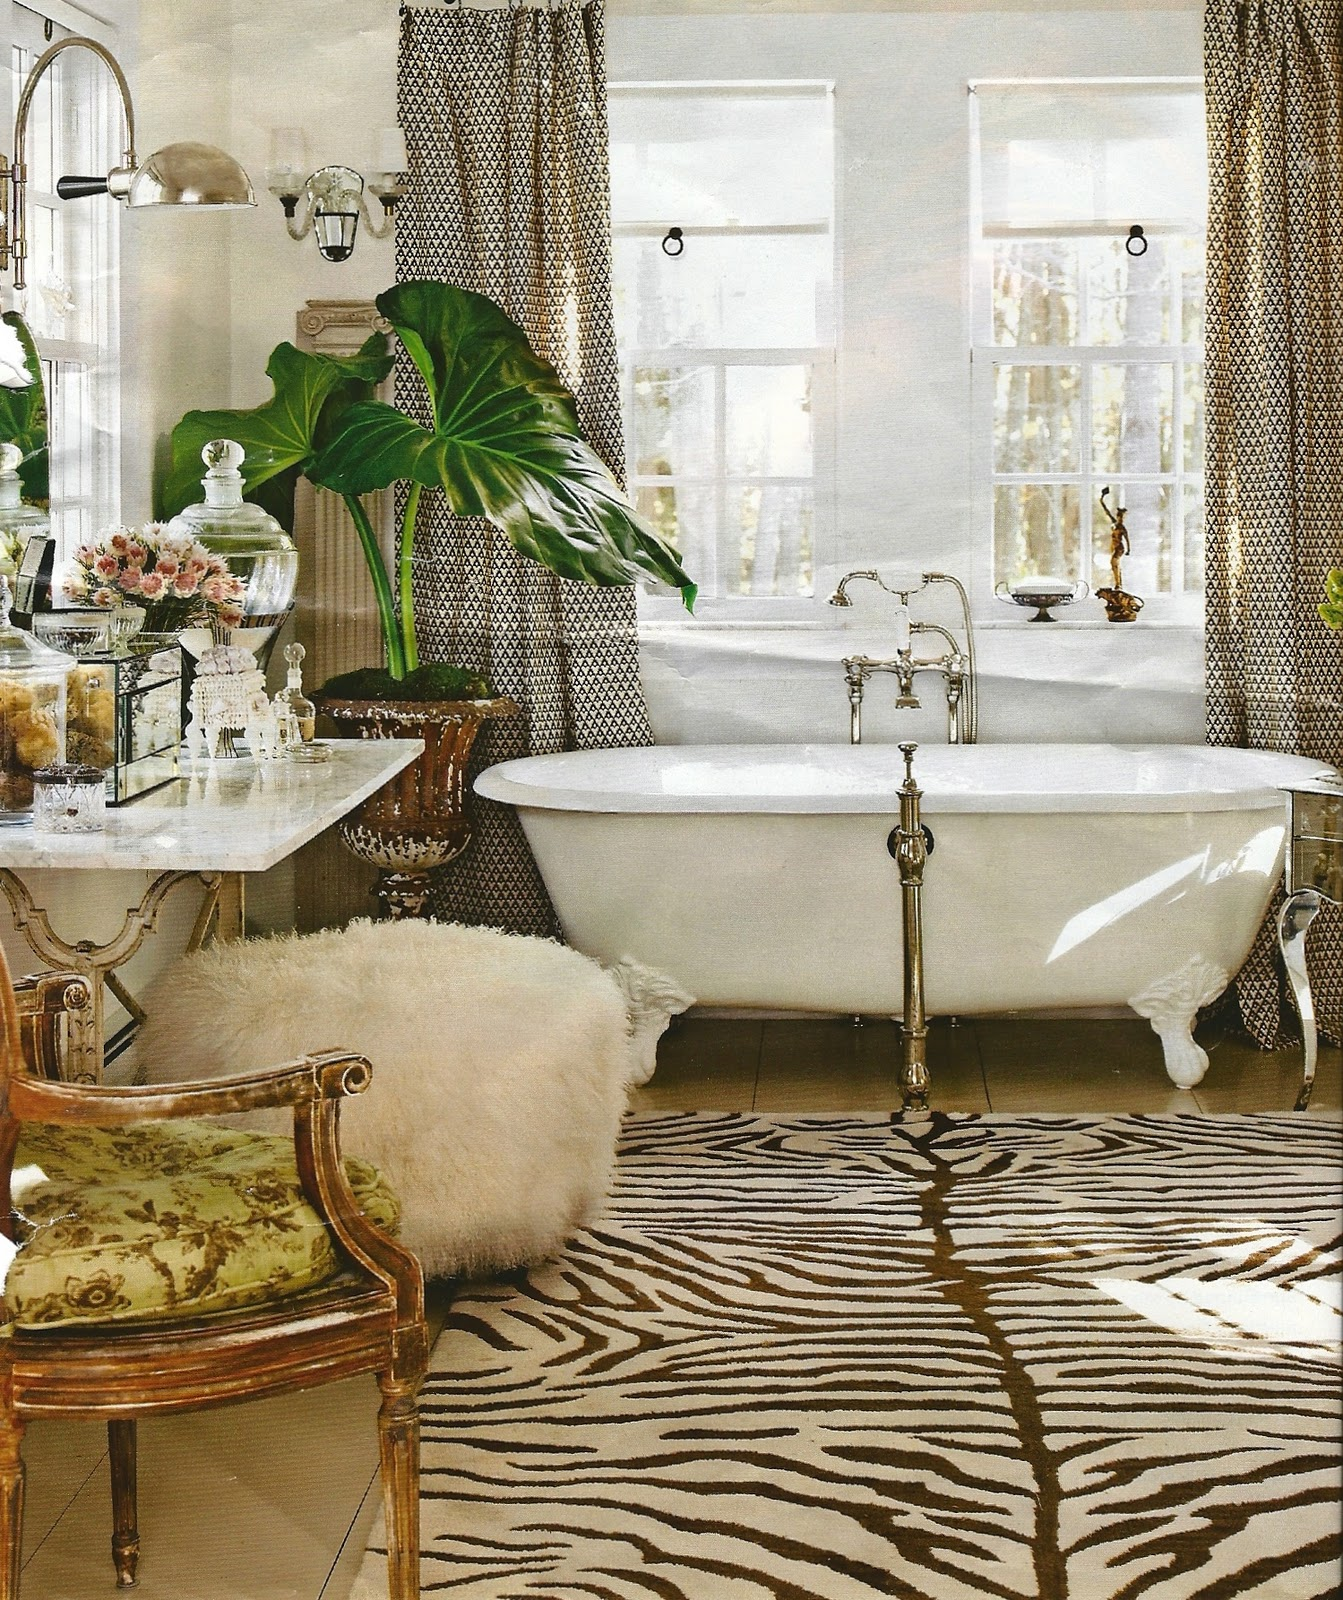 Animal Print Decor: To Da Loos: Loving Animal Print In The Bathroom